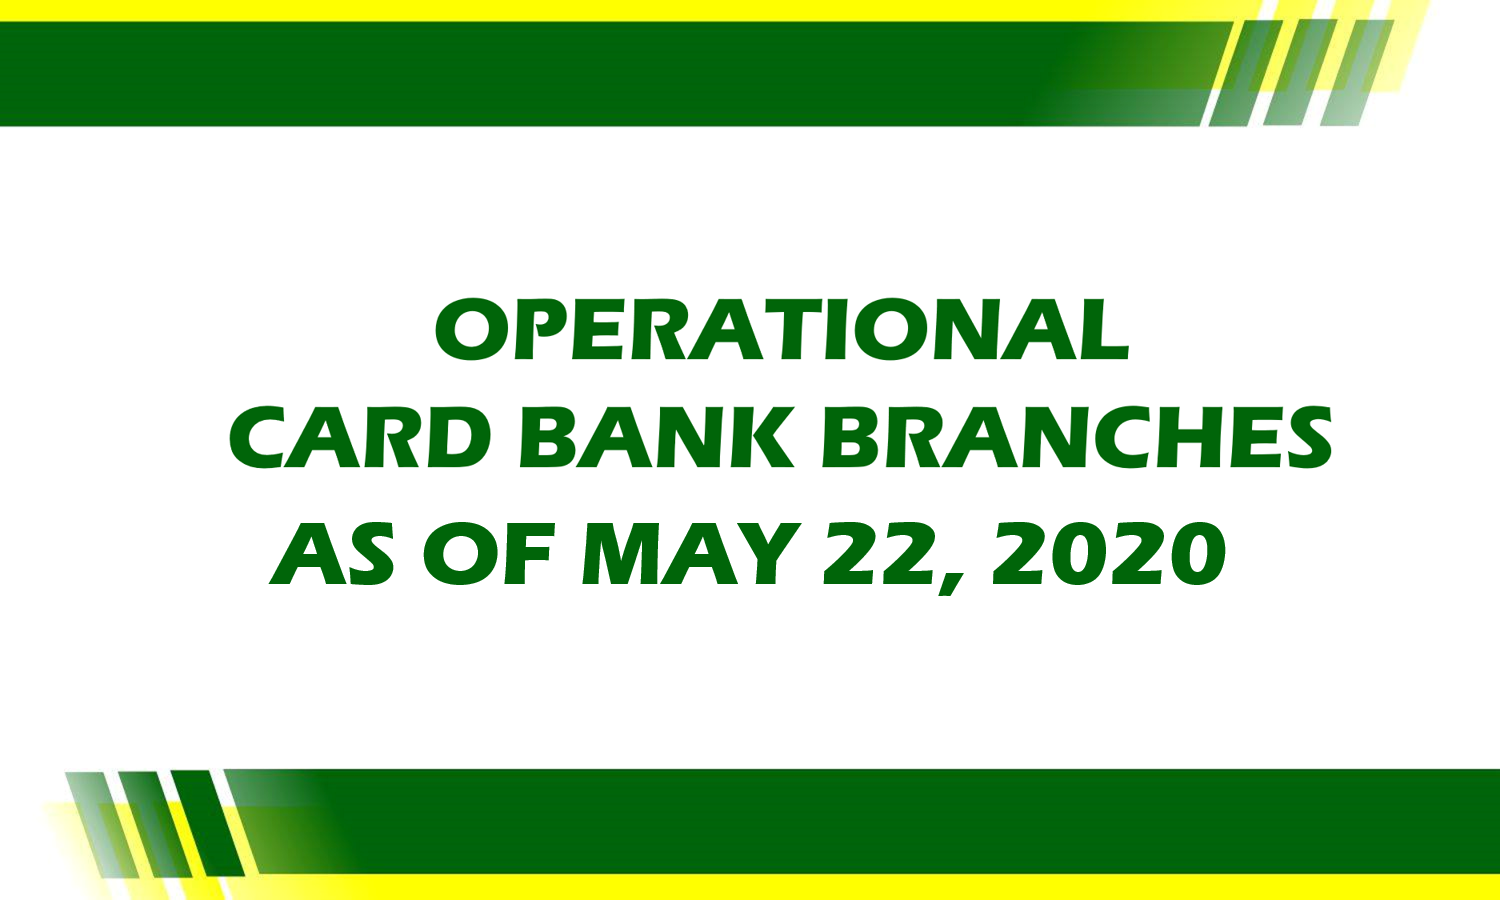 List of Operational Branches As of May 22, 2020